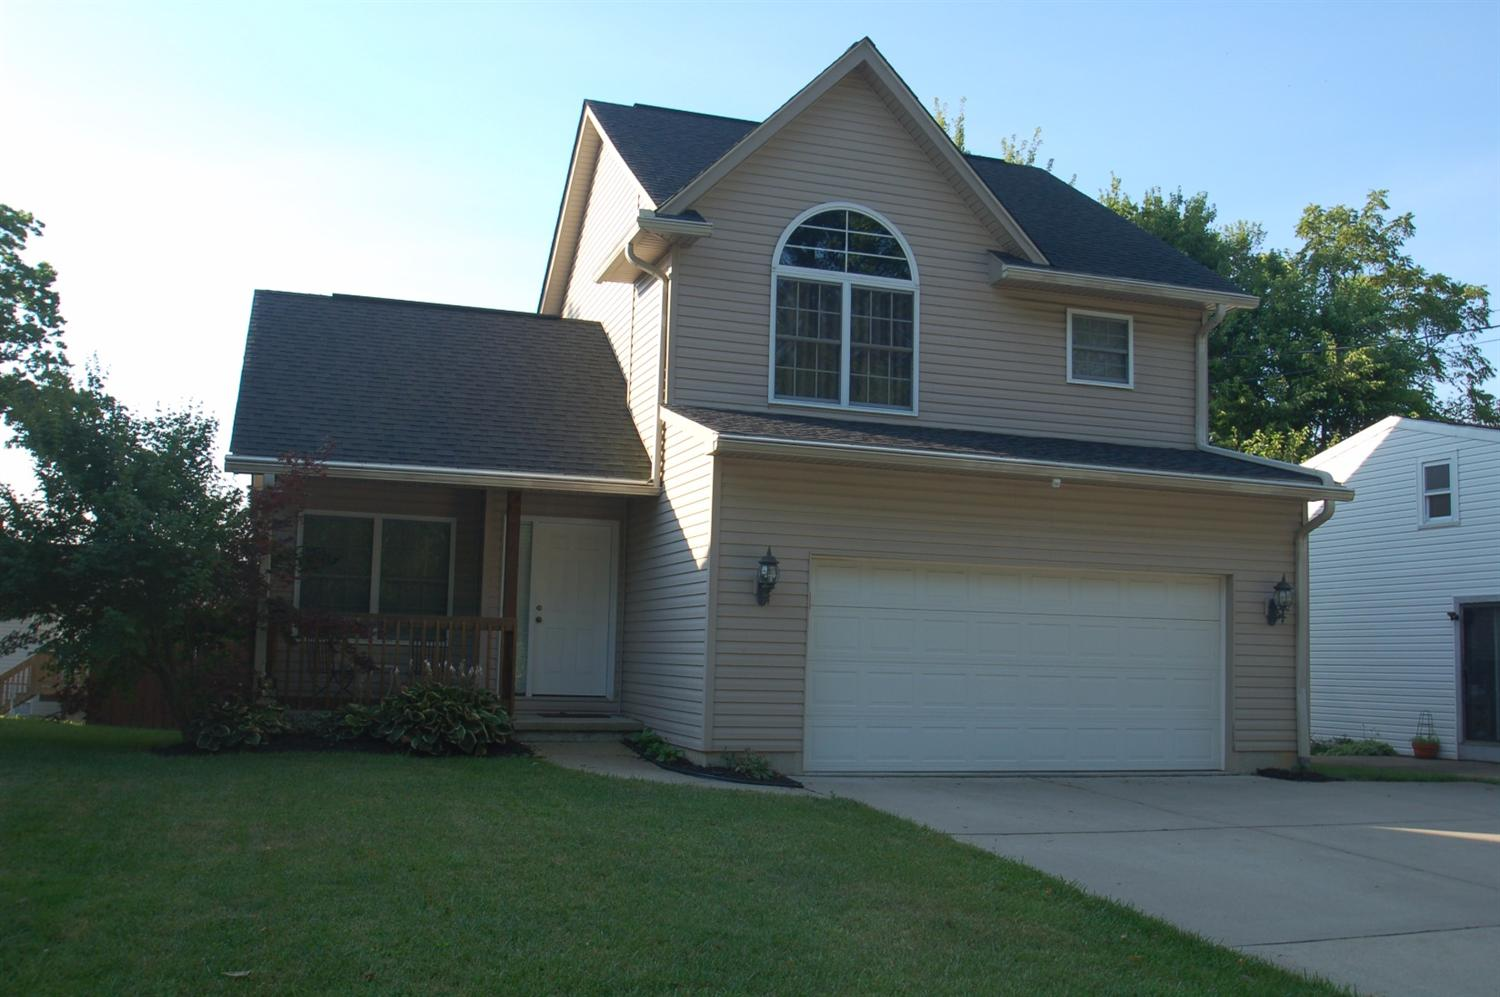 Photo 1 for 2449 Lorraine Ct Crescent Springs, KY 41017